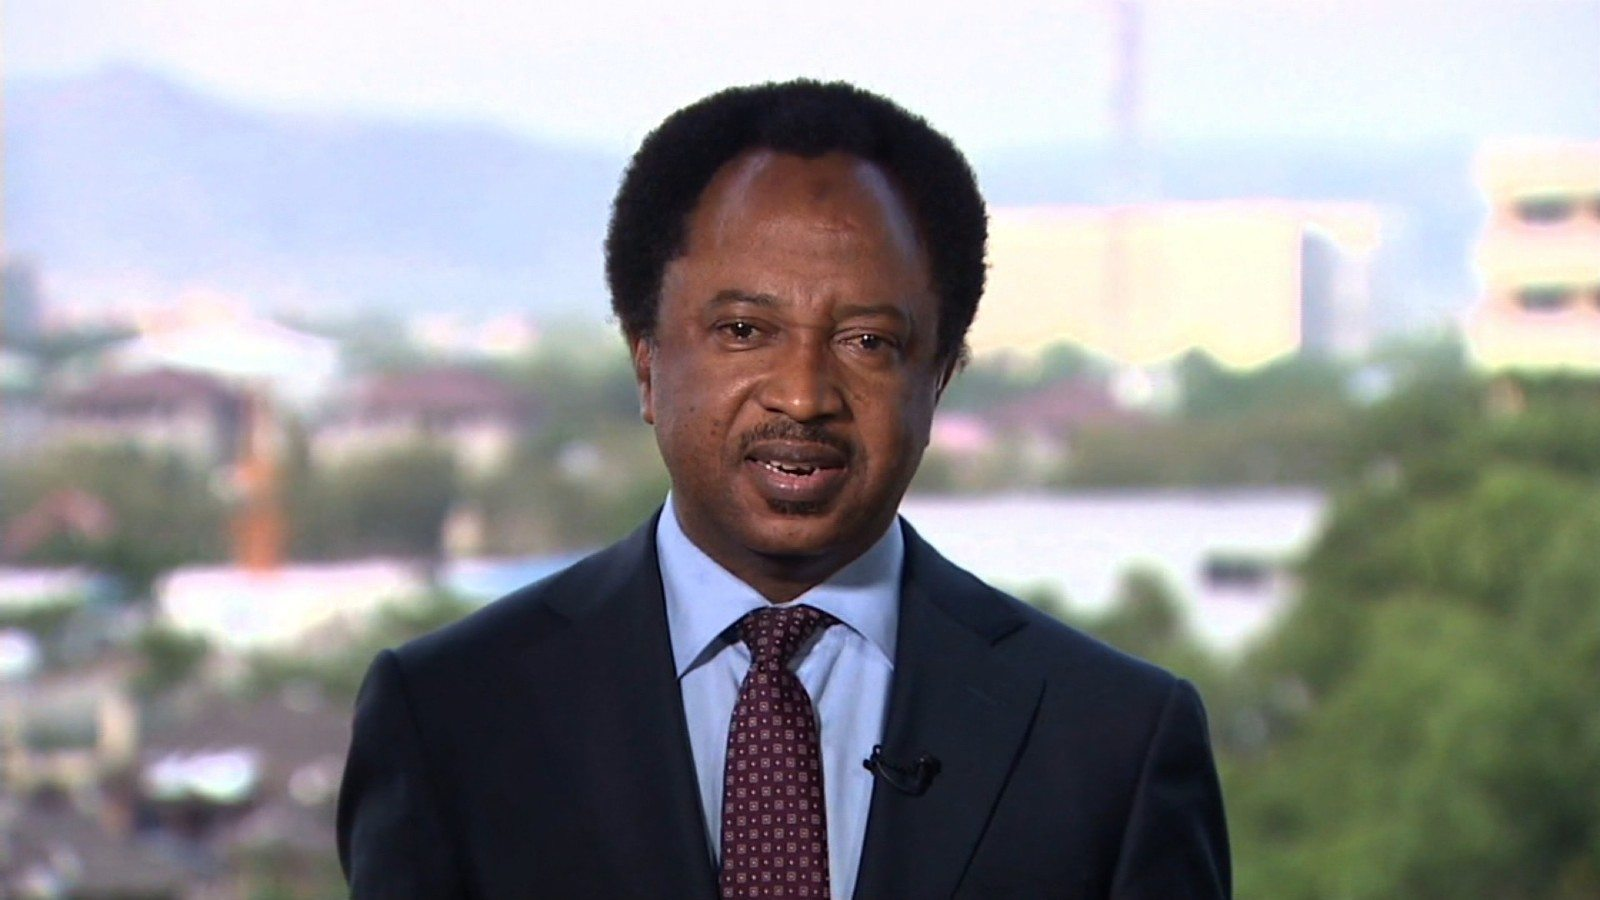 ASUU Struggle Is Legitimate And Morally Right, Says Shehu Sani